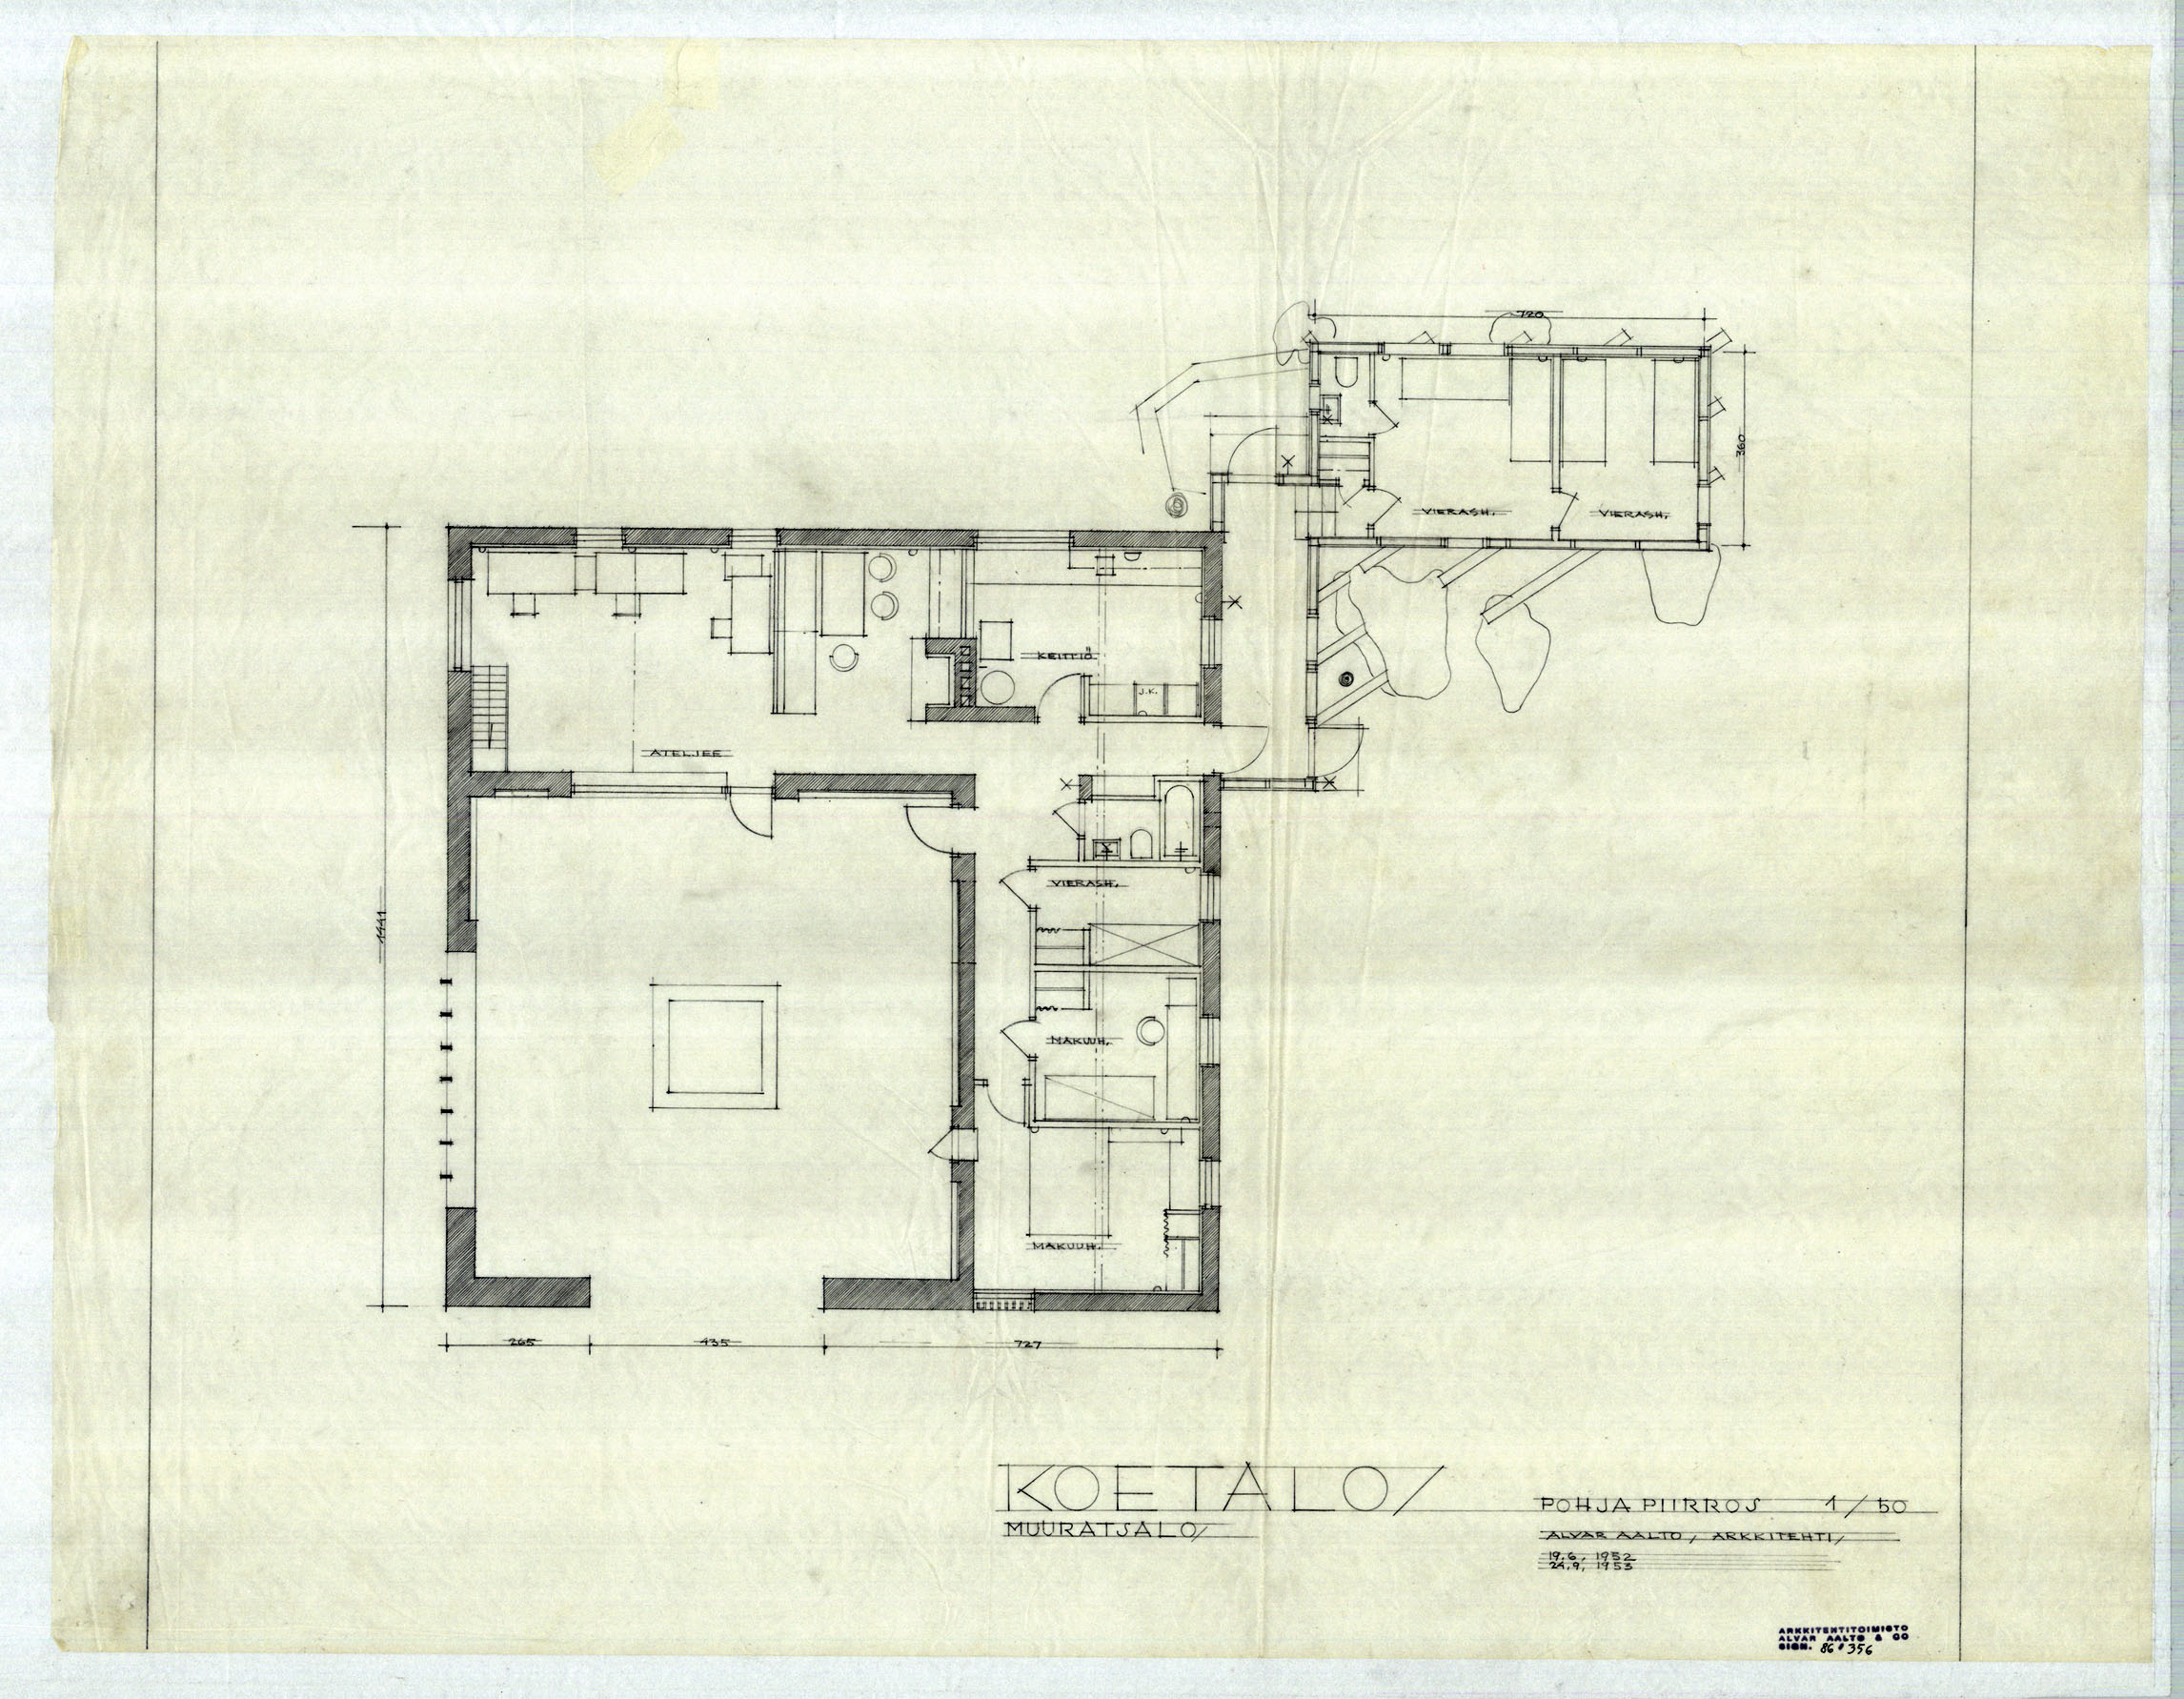 architectural drawings of the muuratsalo experimental house - Alvar Aalto House Plans